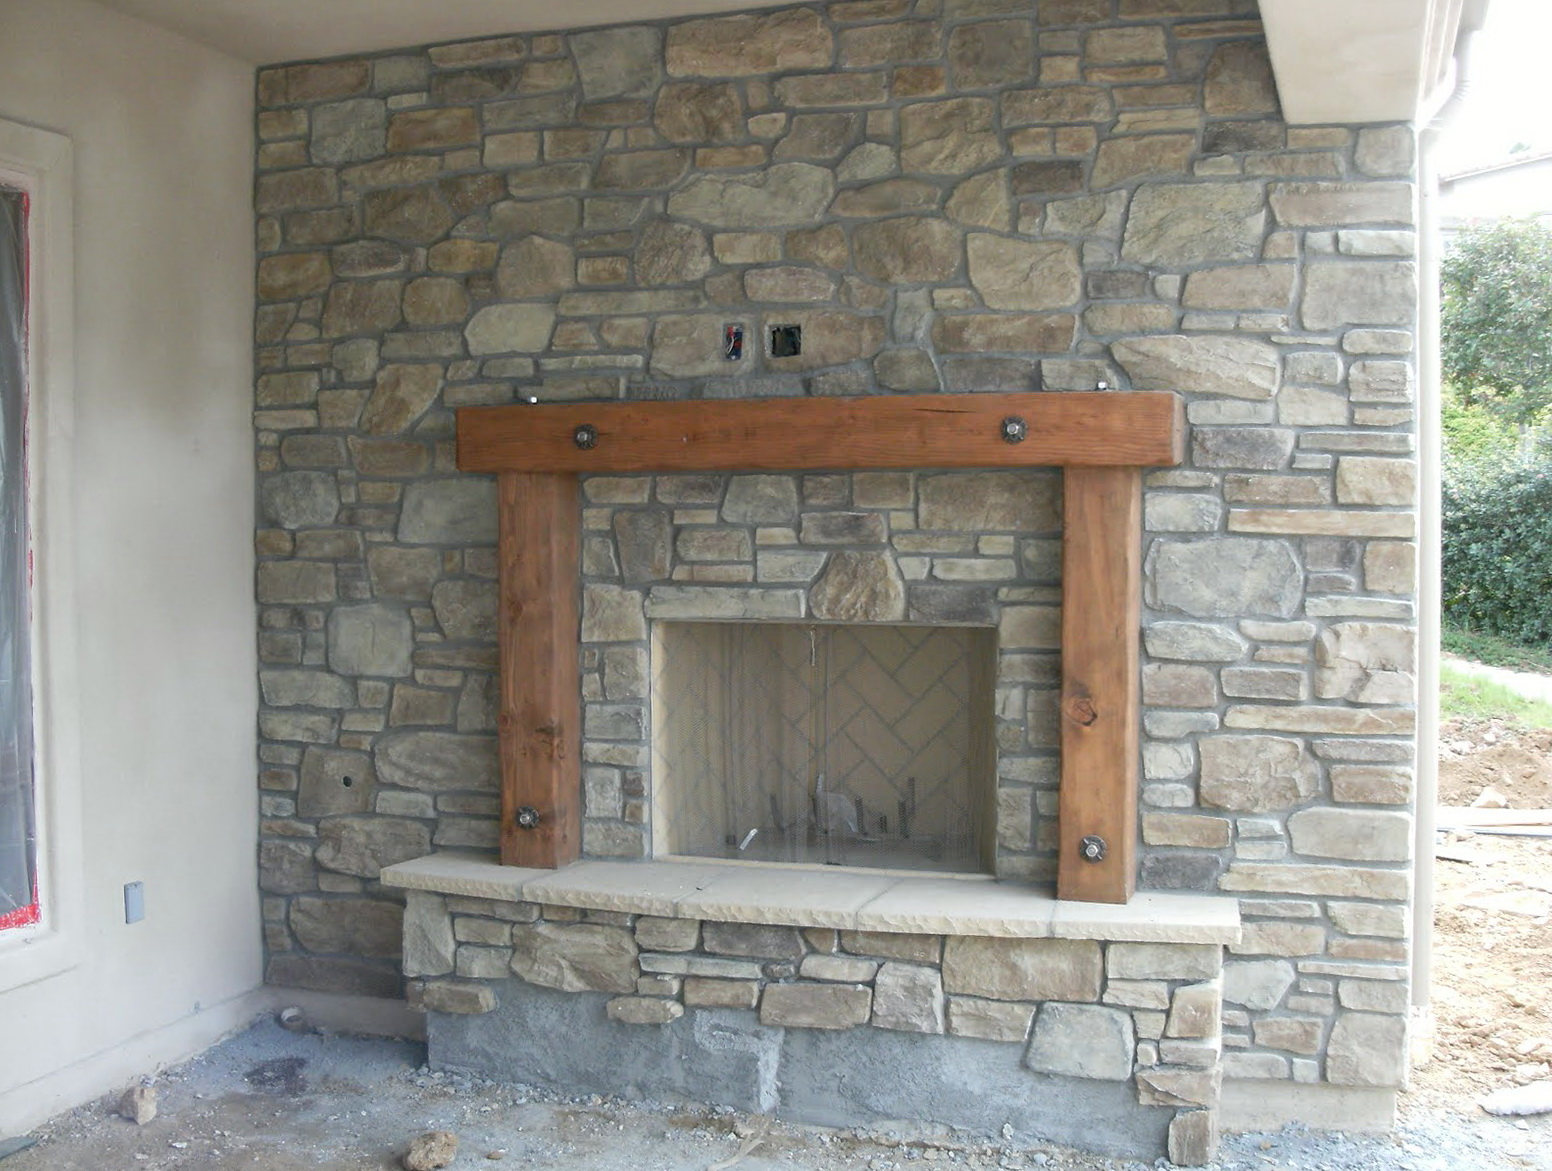 Groovy Stone Veneer For Fireplace Home Depot Fireplace Ideas Home Interior And Landscaping Ologienasavecom